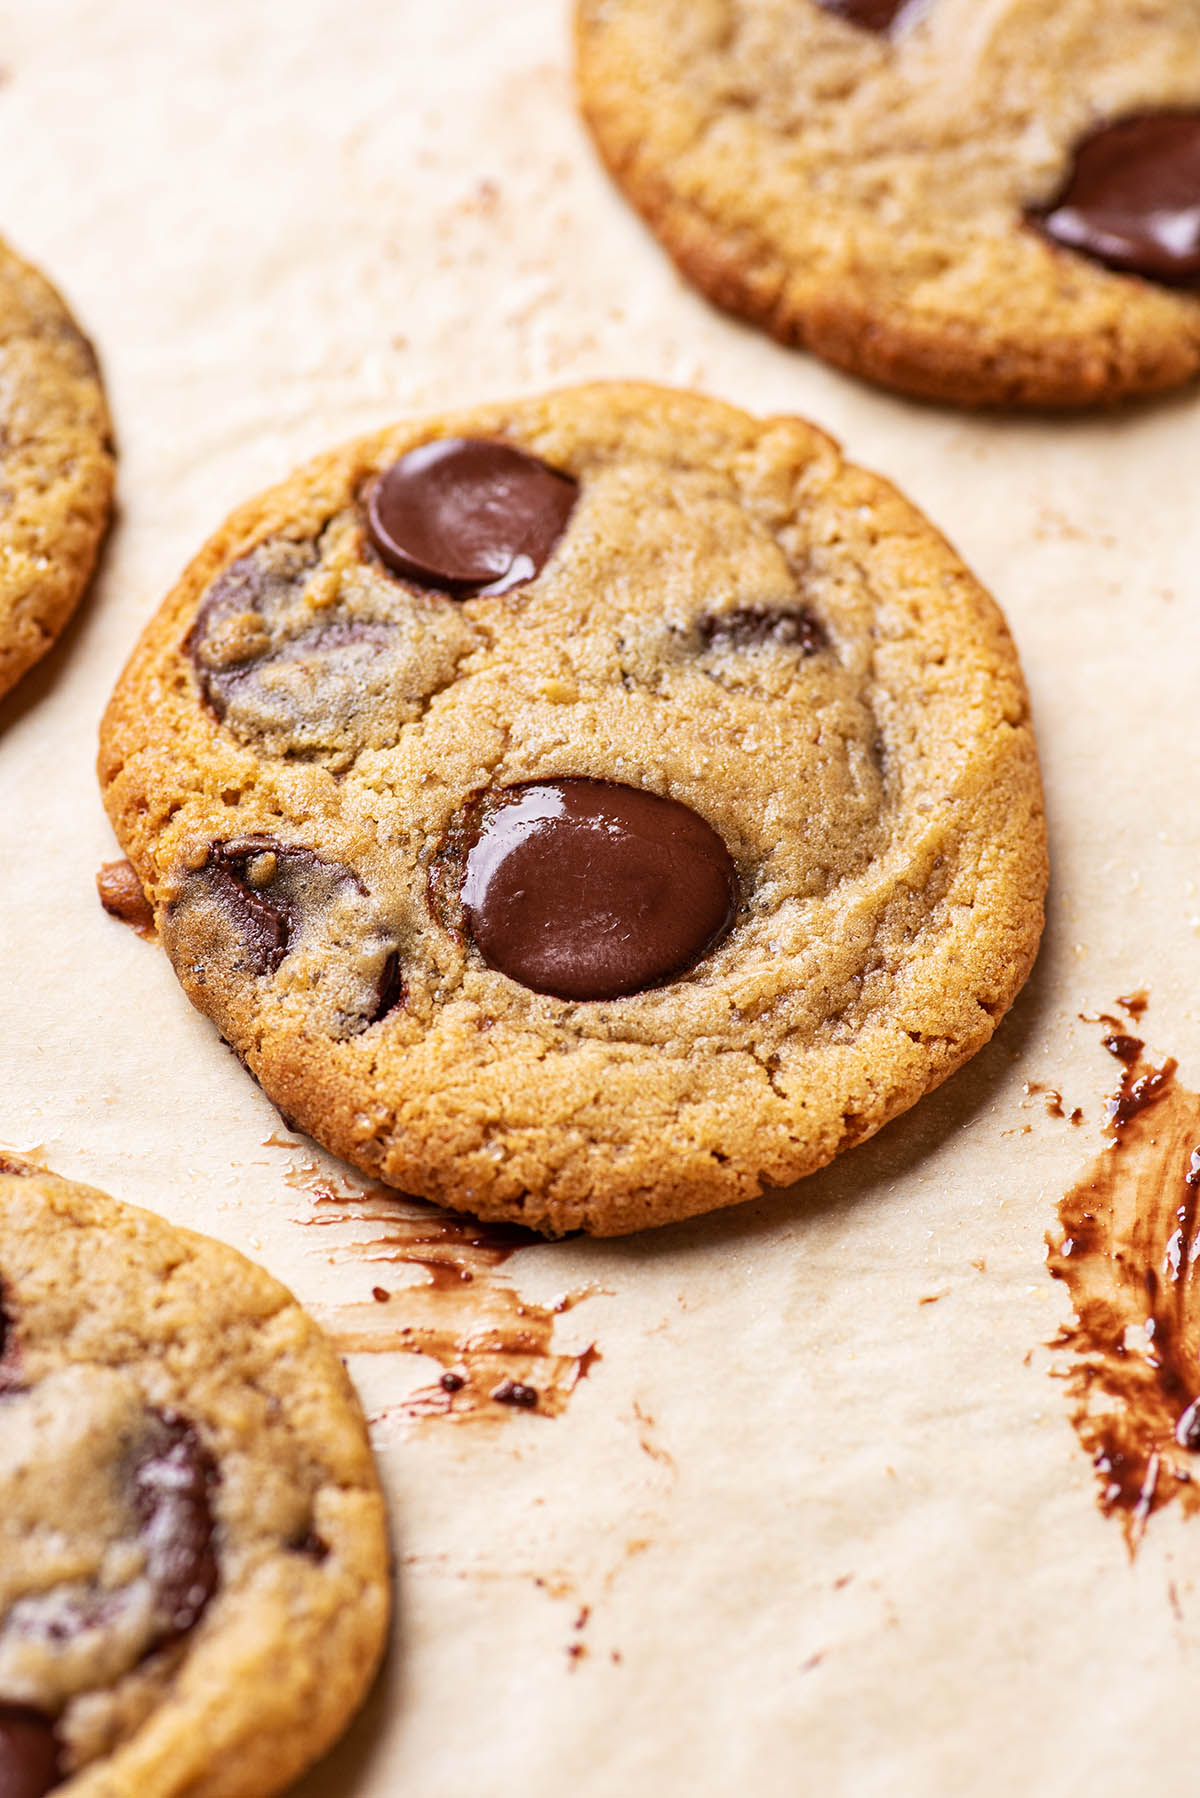 Close up of a chocolate chip cookie.